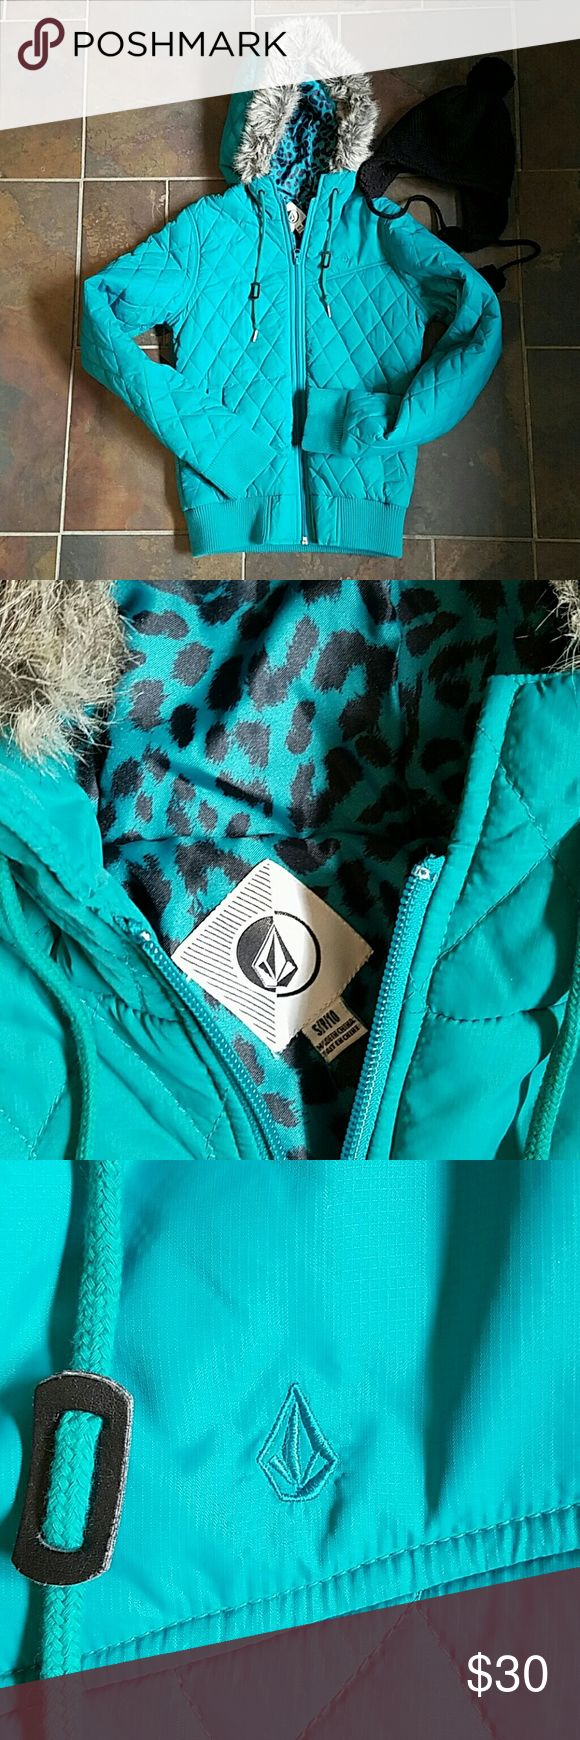 Volcom Girls snow jacket Volcom snow jacket.  Really great teal color. Fur lining on the hood can be taken off, but its still on great shape.  Worn a few times, washed, and air dried! Volcom Jackets & Coats Puffers